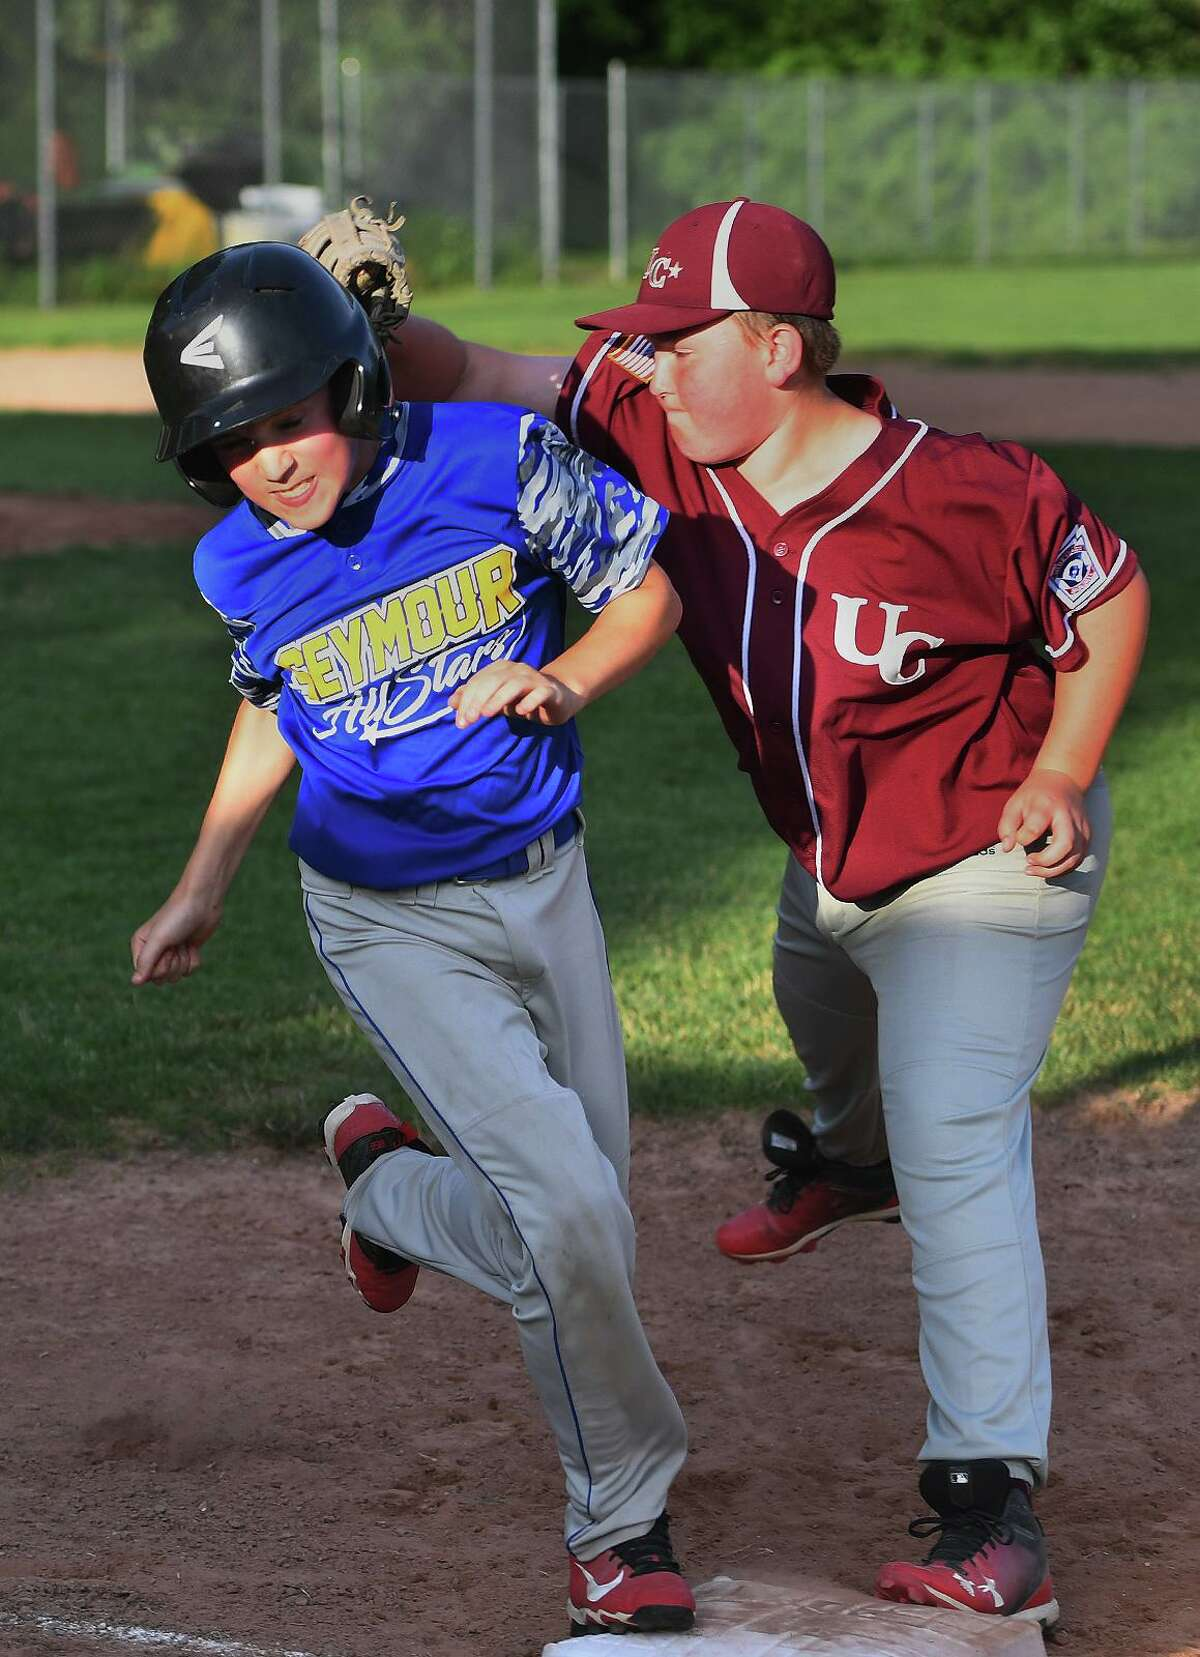 Seymour's Nate Nevers is forced out at first by Union City first baseman Billy Morran for the final out of the fourth inning on Monday.